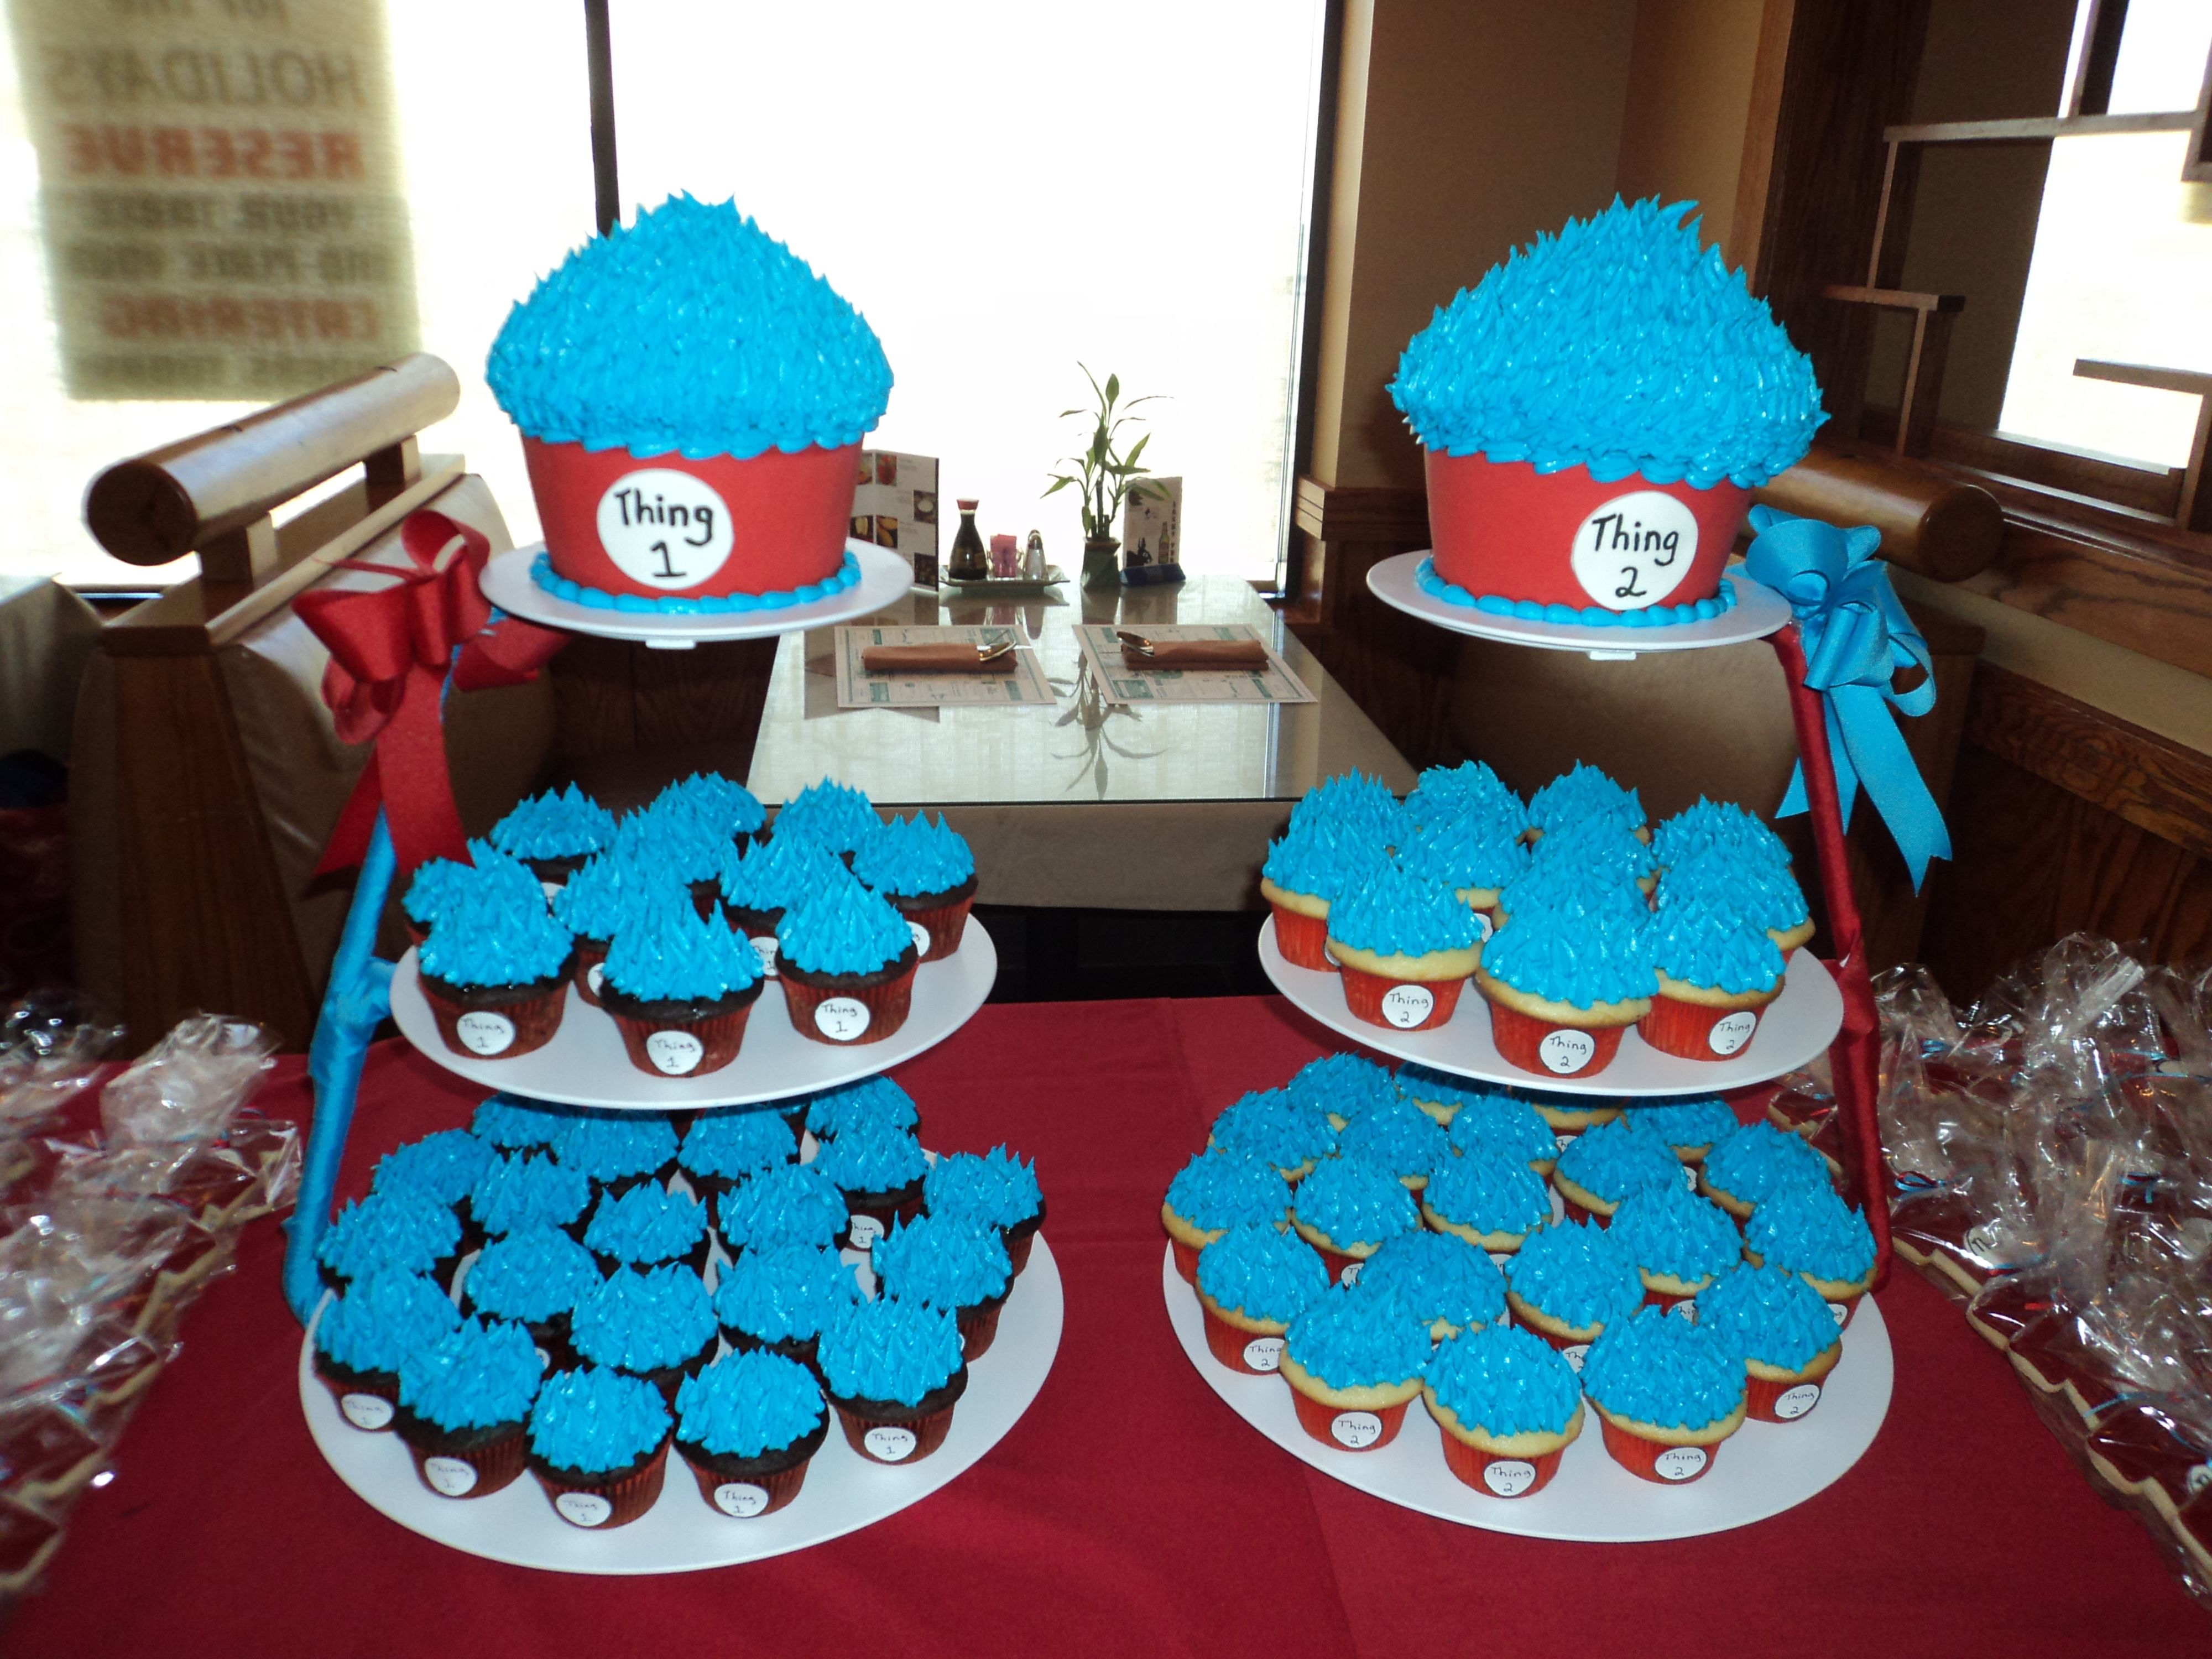 Stupendous Thing 1 Thing 2 For Twins 1St Birthday With Images New Funny Birthday Cards Online Necthendildamsfinfo